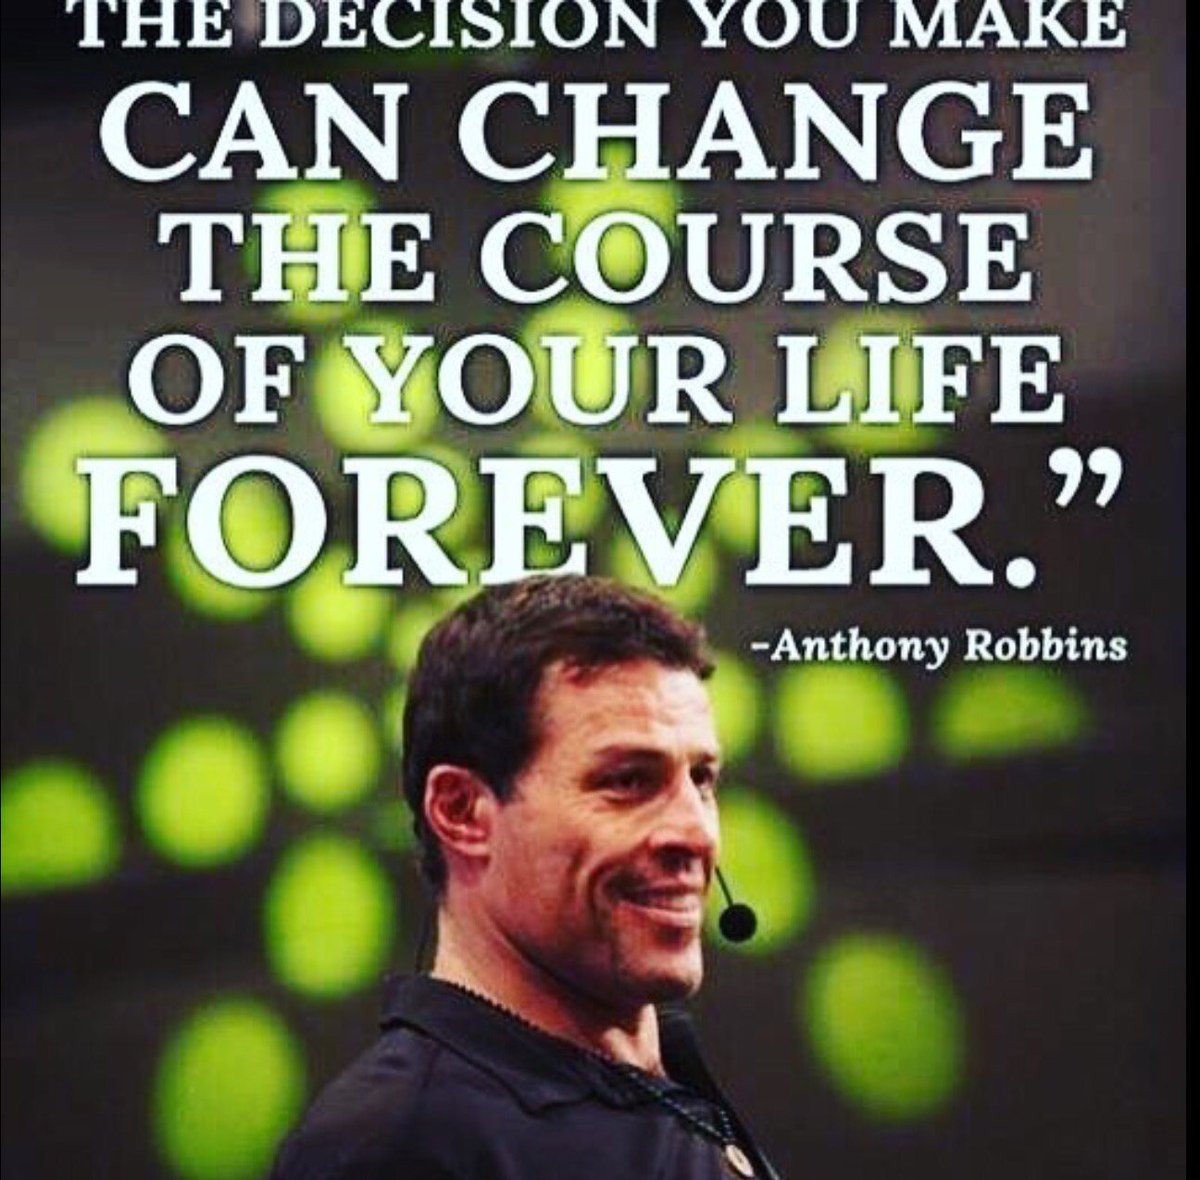 The decision you make can change the course of your #life #FOREVER - Anthony Robbins   ==> http://Bit.ly/EnergytoburnSixDayExperience…